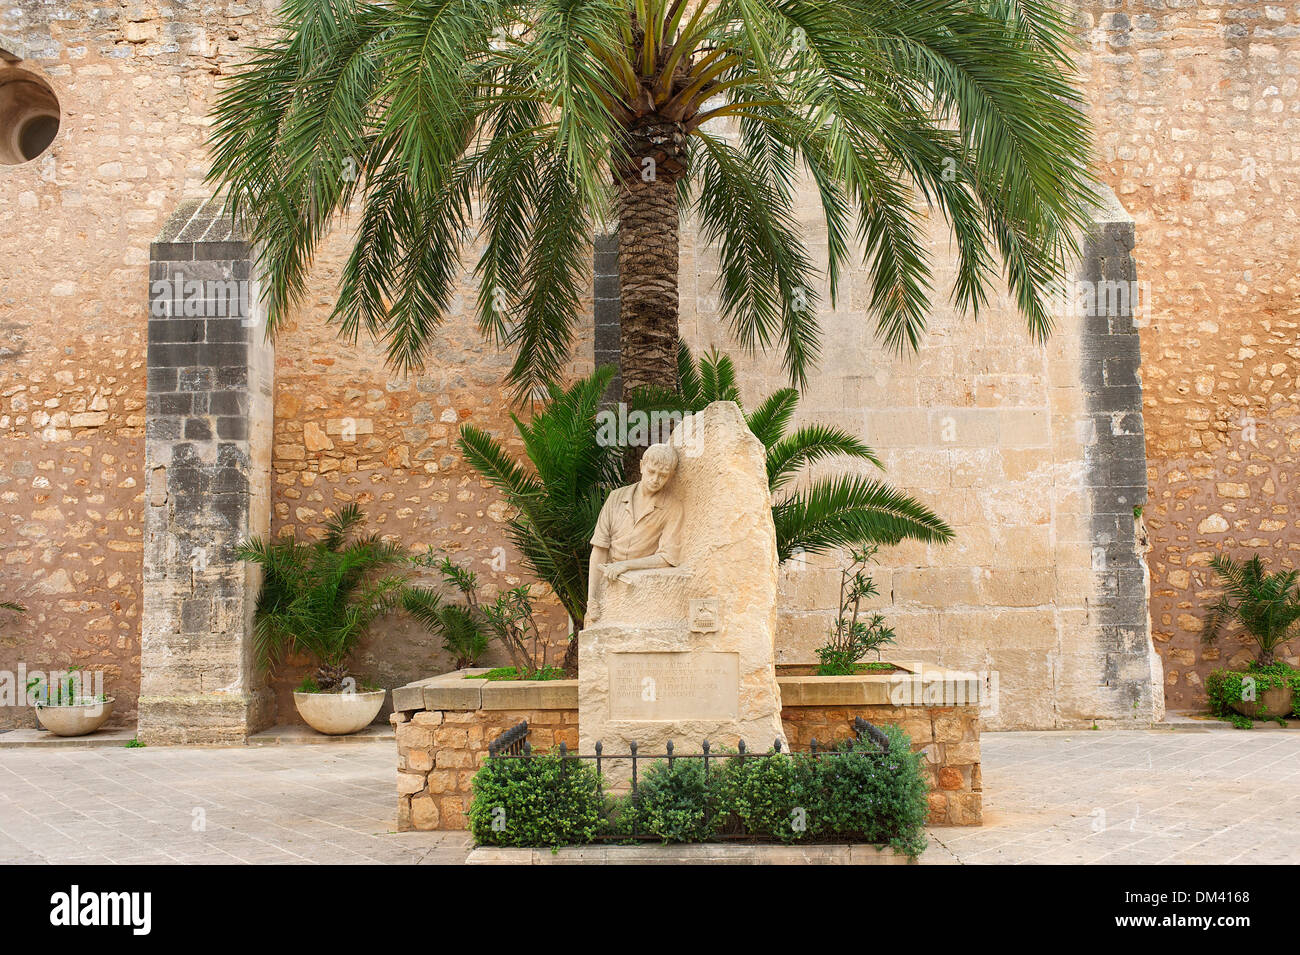 Balearic Islands Majorca Spain Europe statue sculpture figure historical culture cultural art skill piece of art sculpture - Stock Image